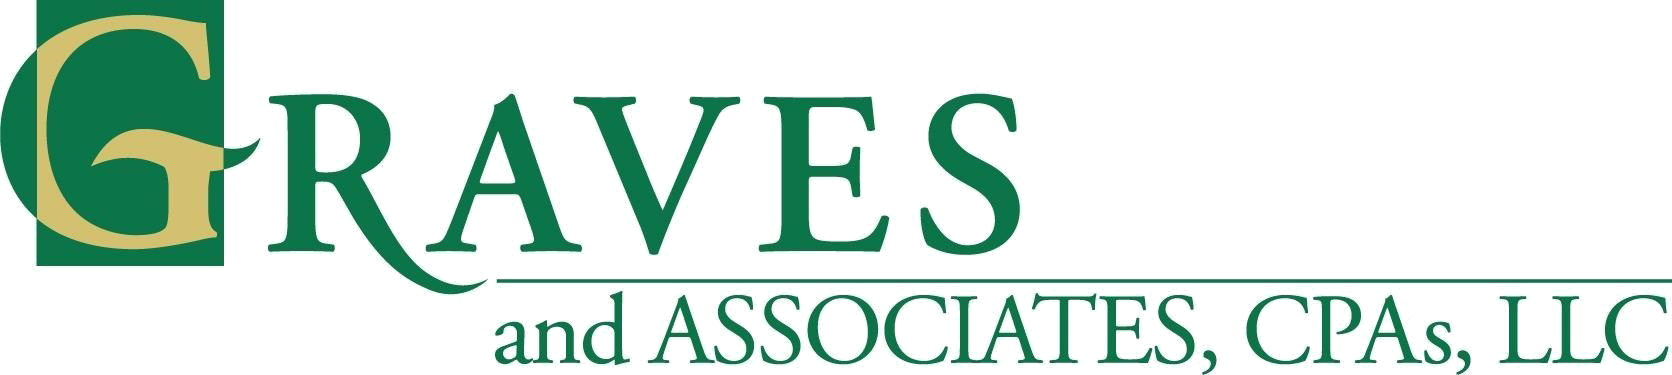 Graves and Associates Logo